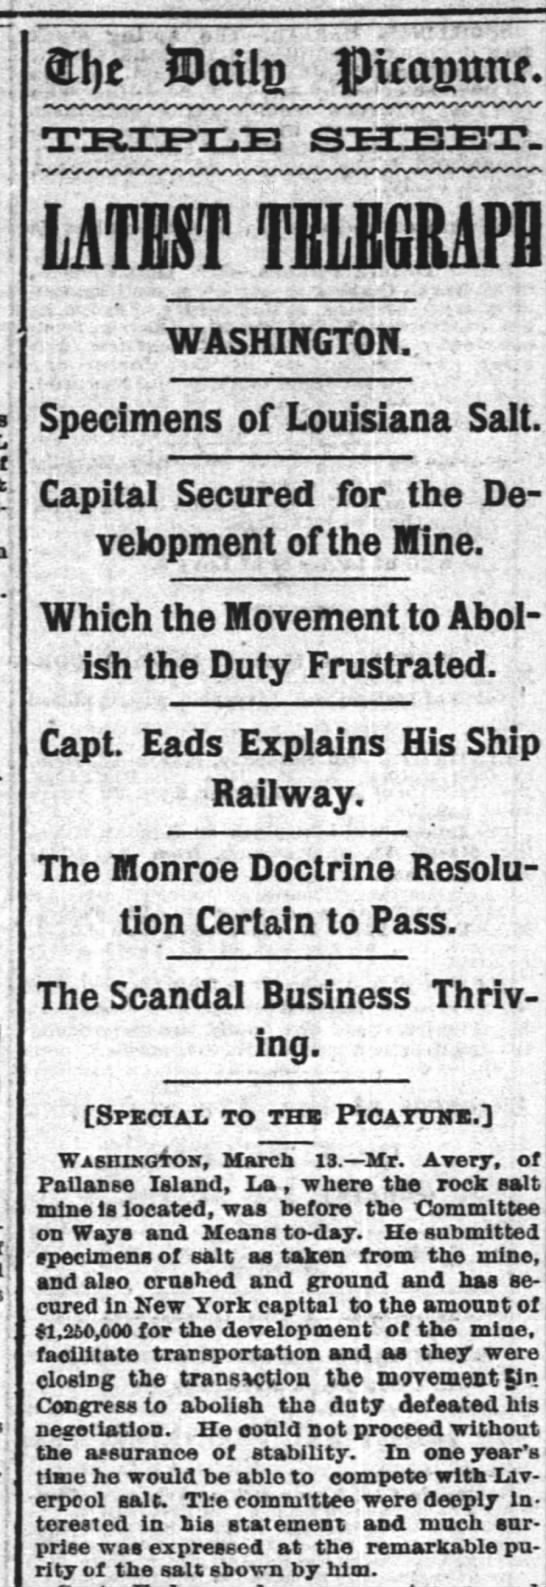 The Times-Picayune (New Orleans) March 14, 1880 -